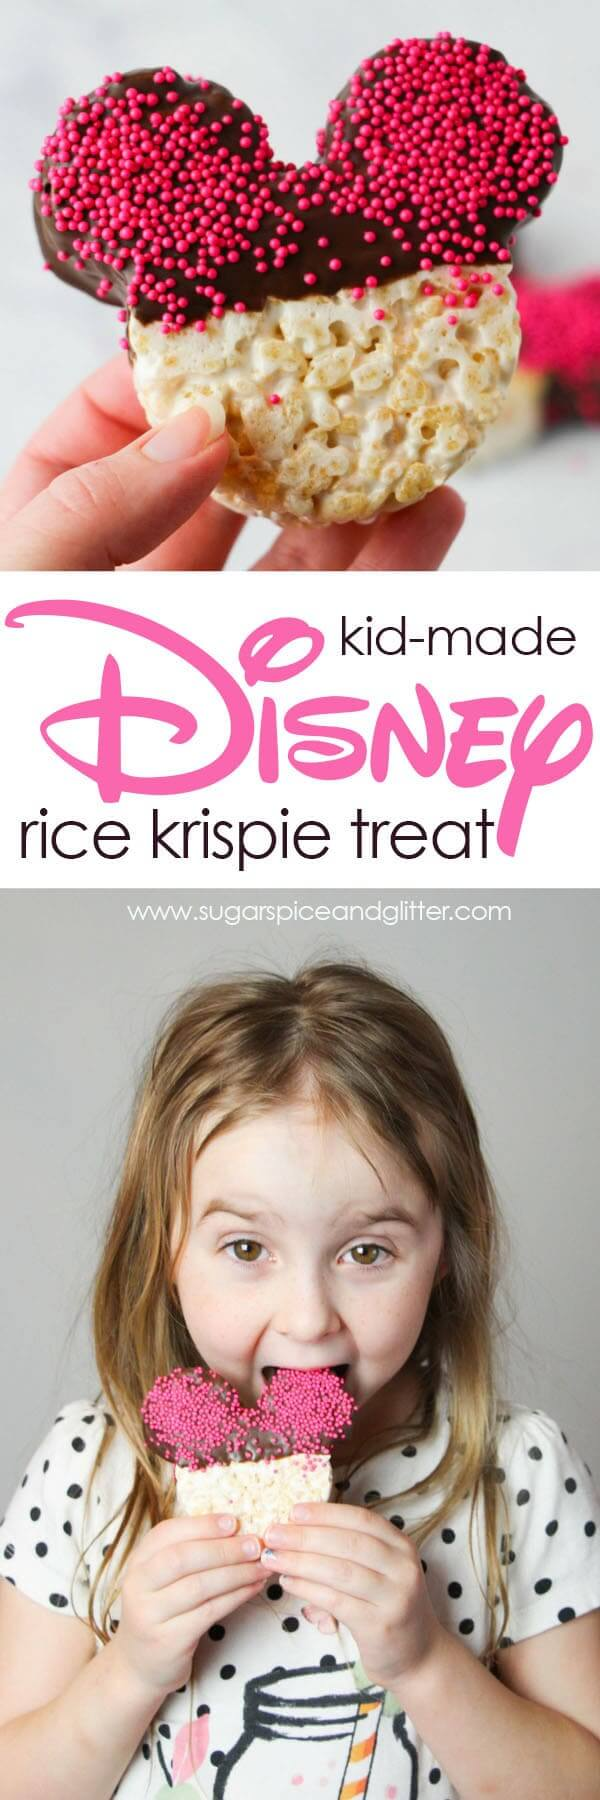 An easy Disney dessert kids can make to have a bit of the parks at home, these Mickey-shaped Rice Krispie treats are a classic treat that's allergy-safe for lunch boxes or playdates